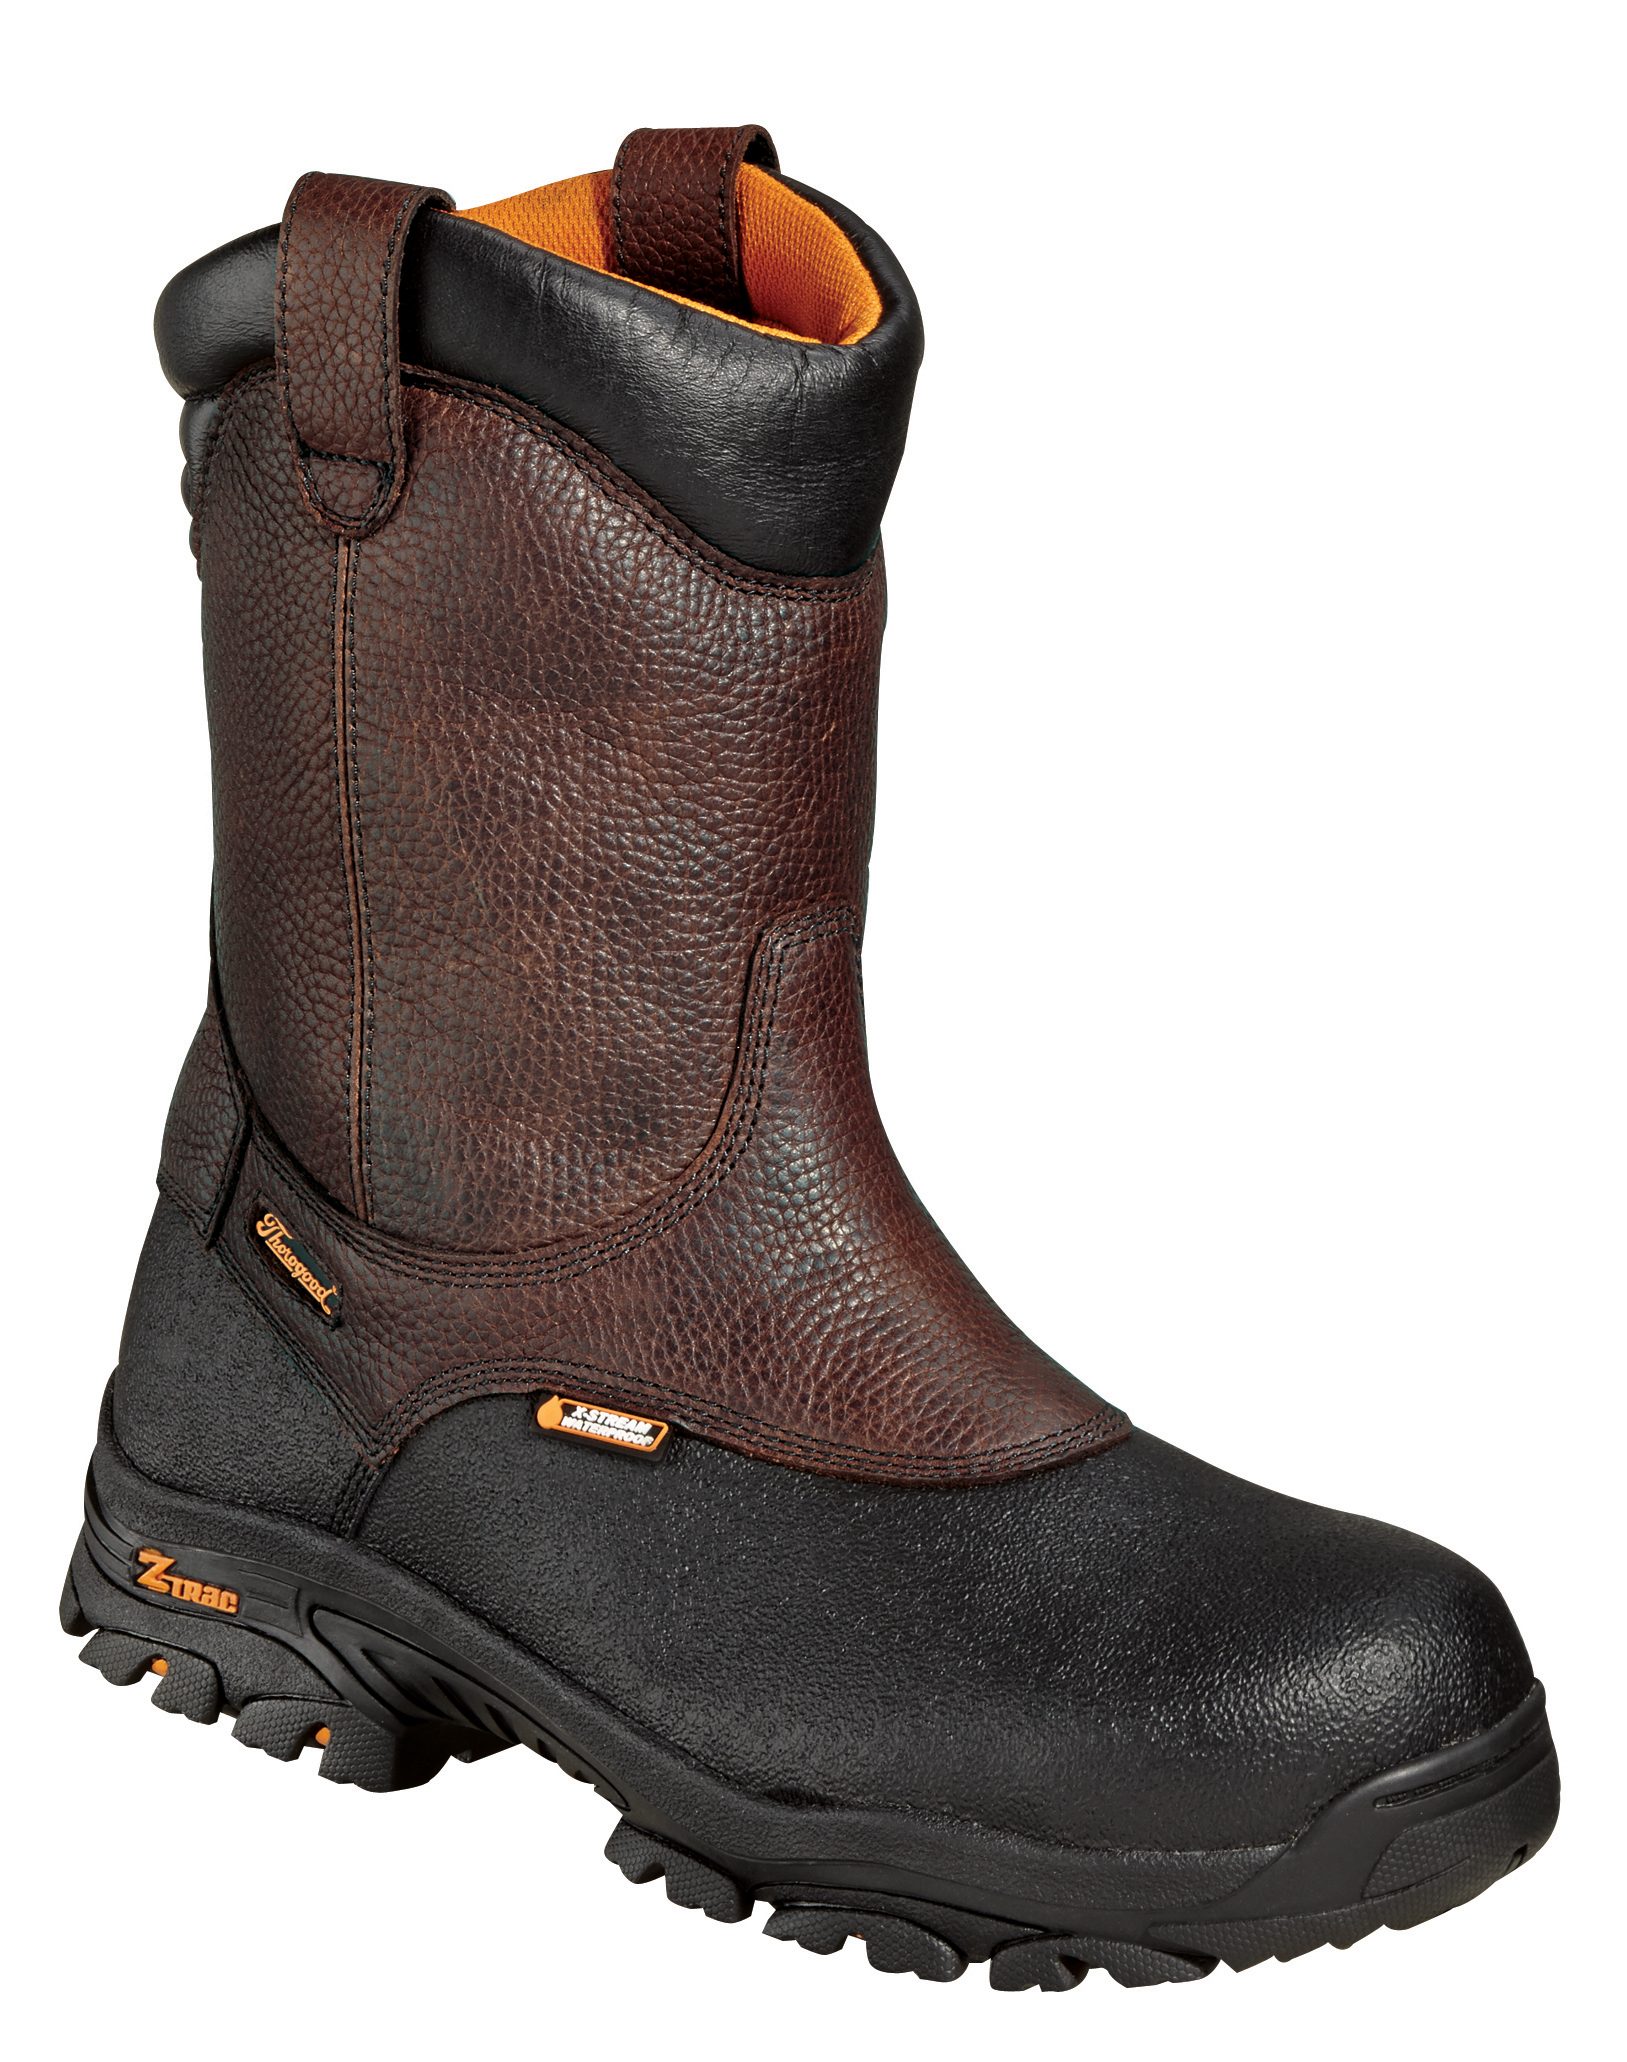 Thorogood Waterproof Pull On Comp Toe Boots 804 4810